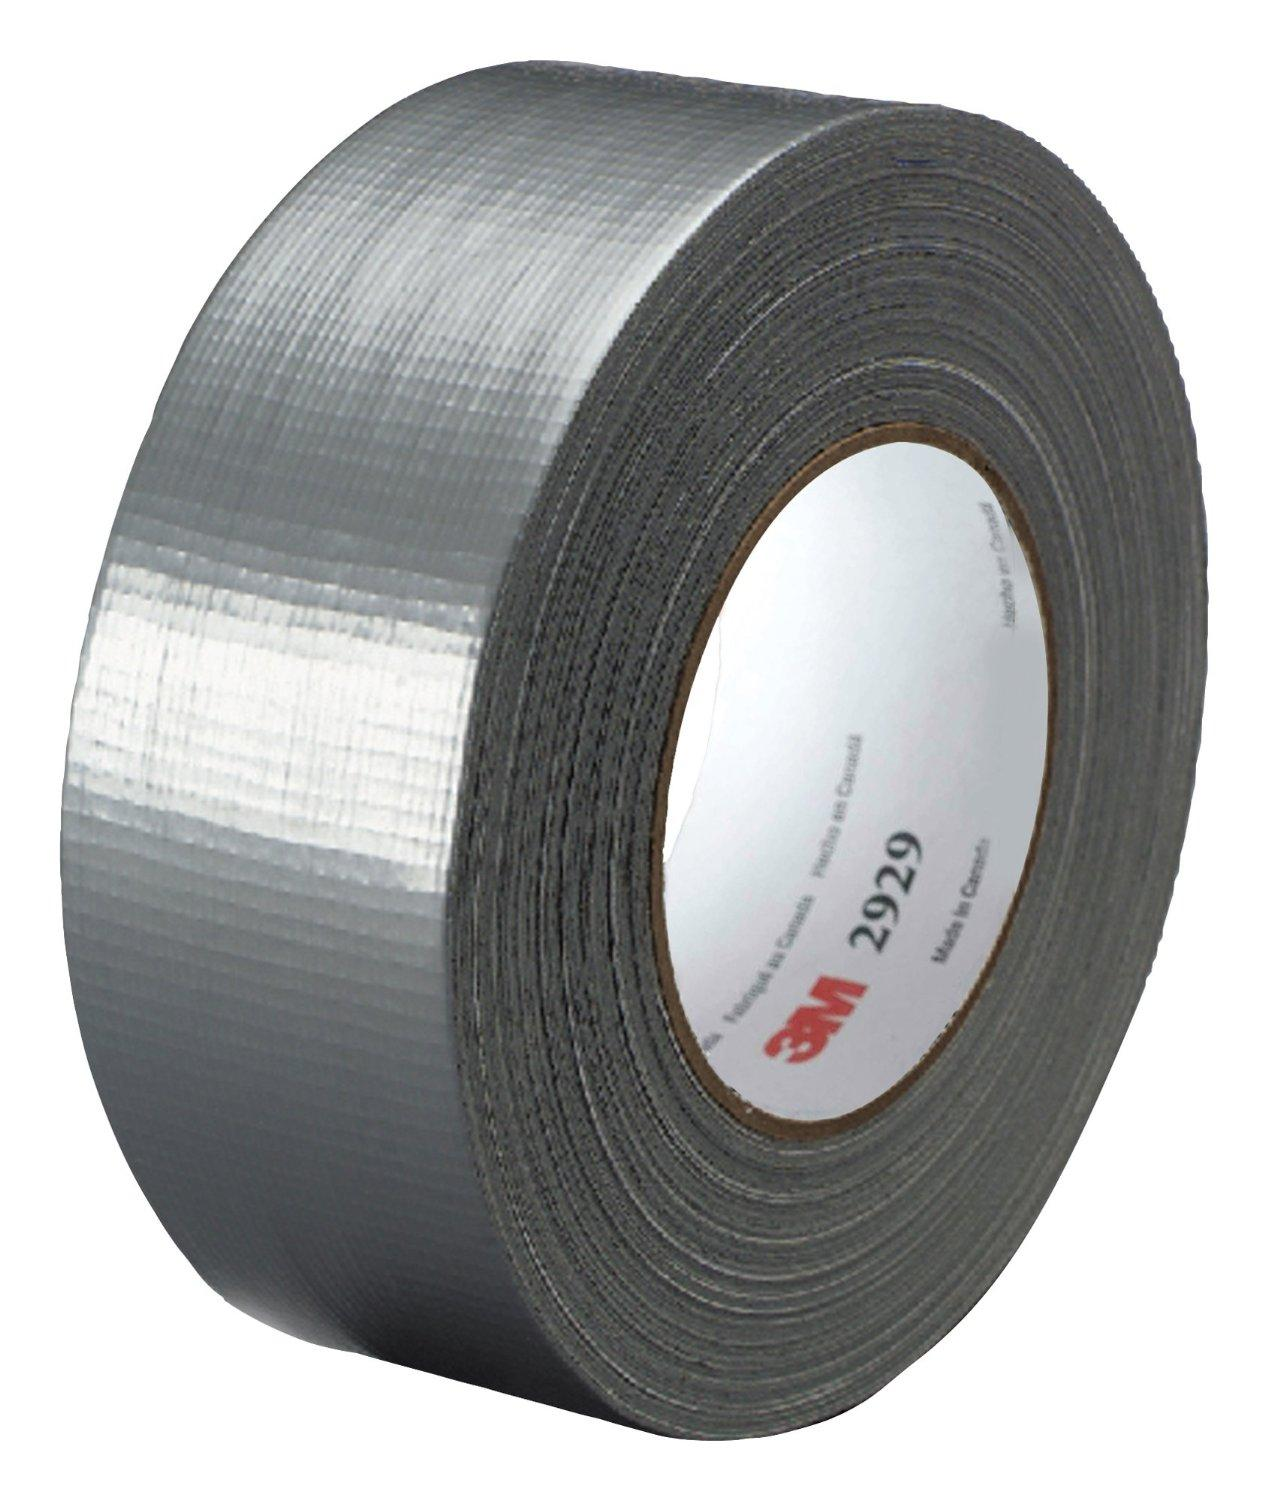 $5.77 3M Utility Duct Tape 2929 Silver, 1.88 in x 50 yd 5.8 mils (Pack of 1)